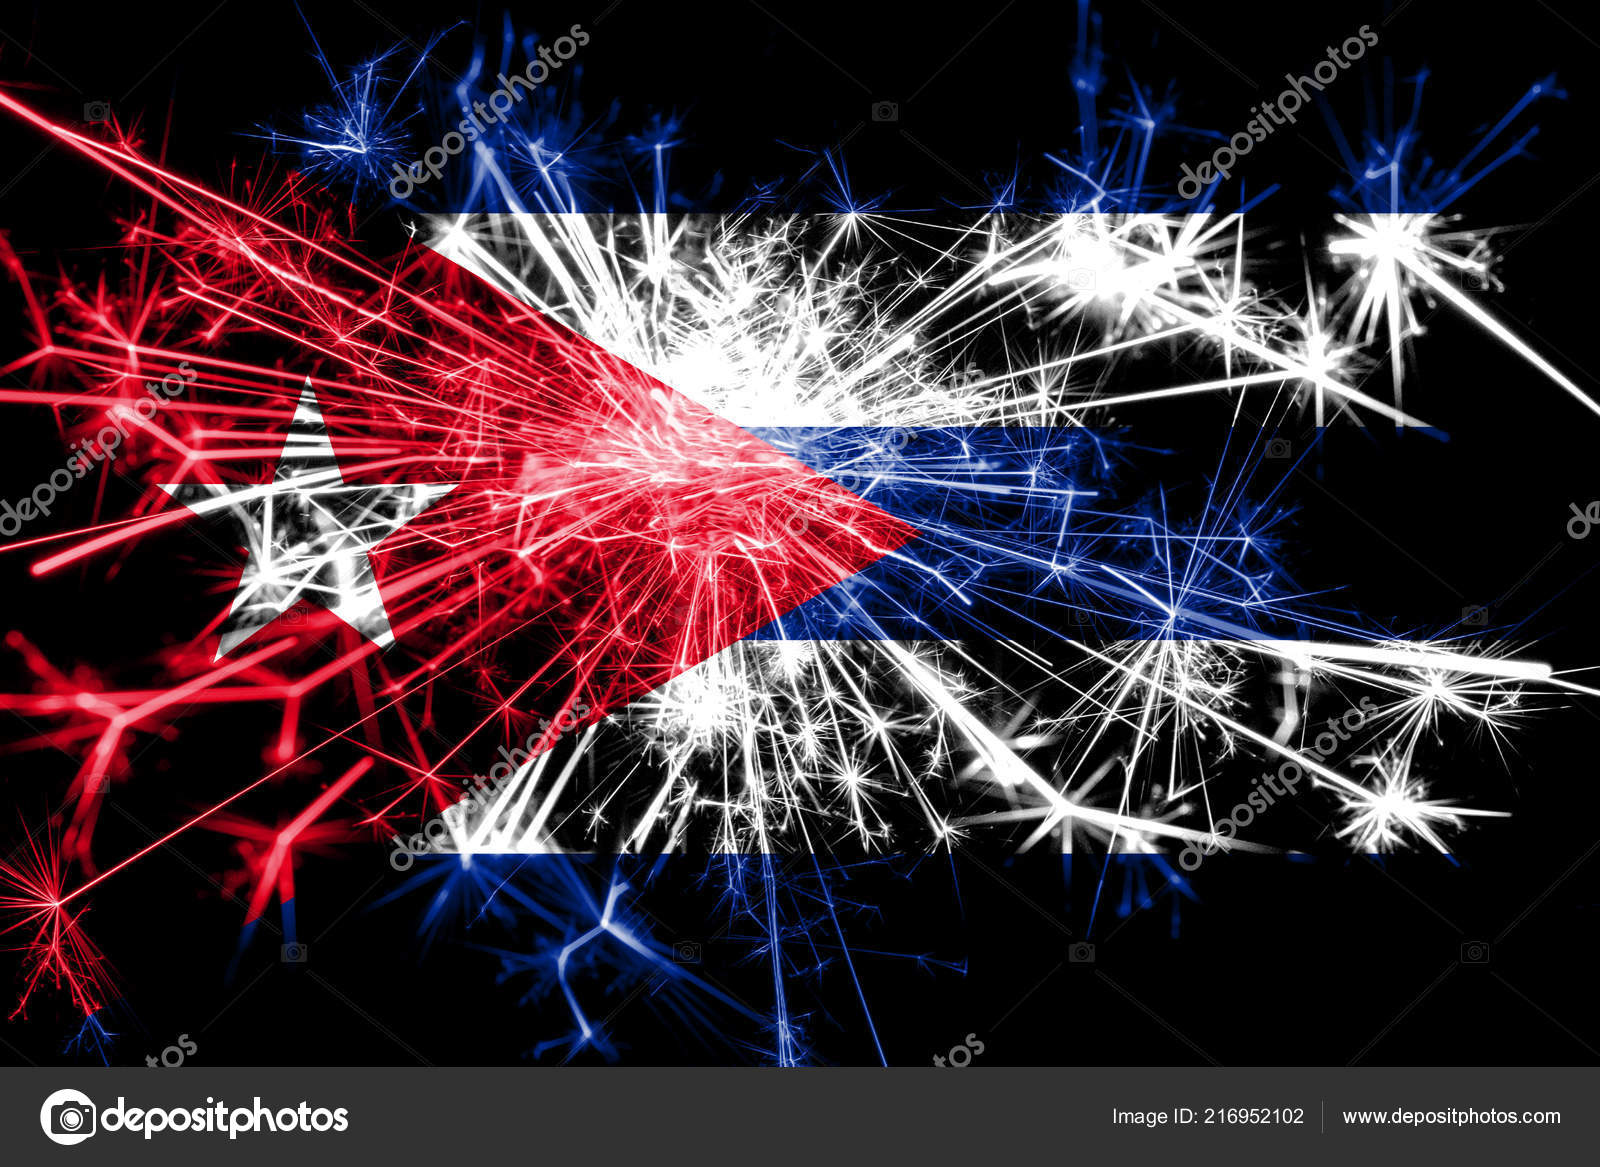 Christmas In Cuba 2019.Cuba Fireworks Sparkling Flag New Year 2019 Christmas Party